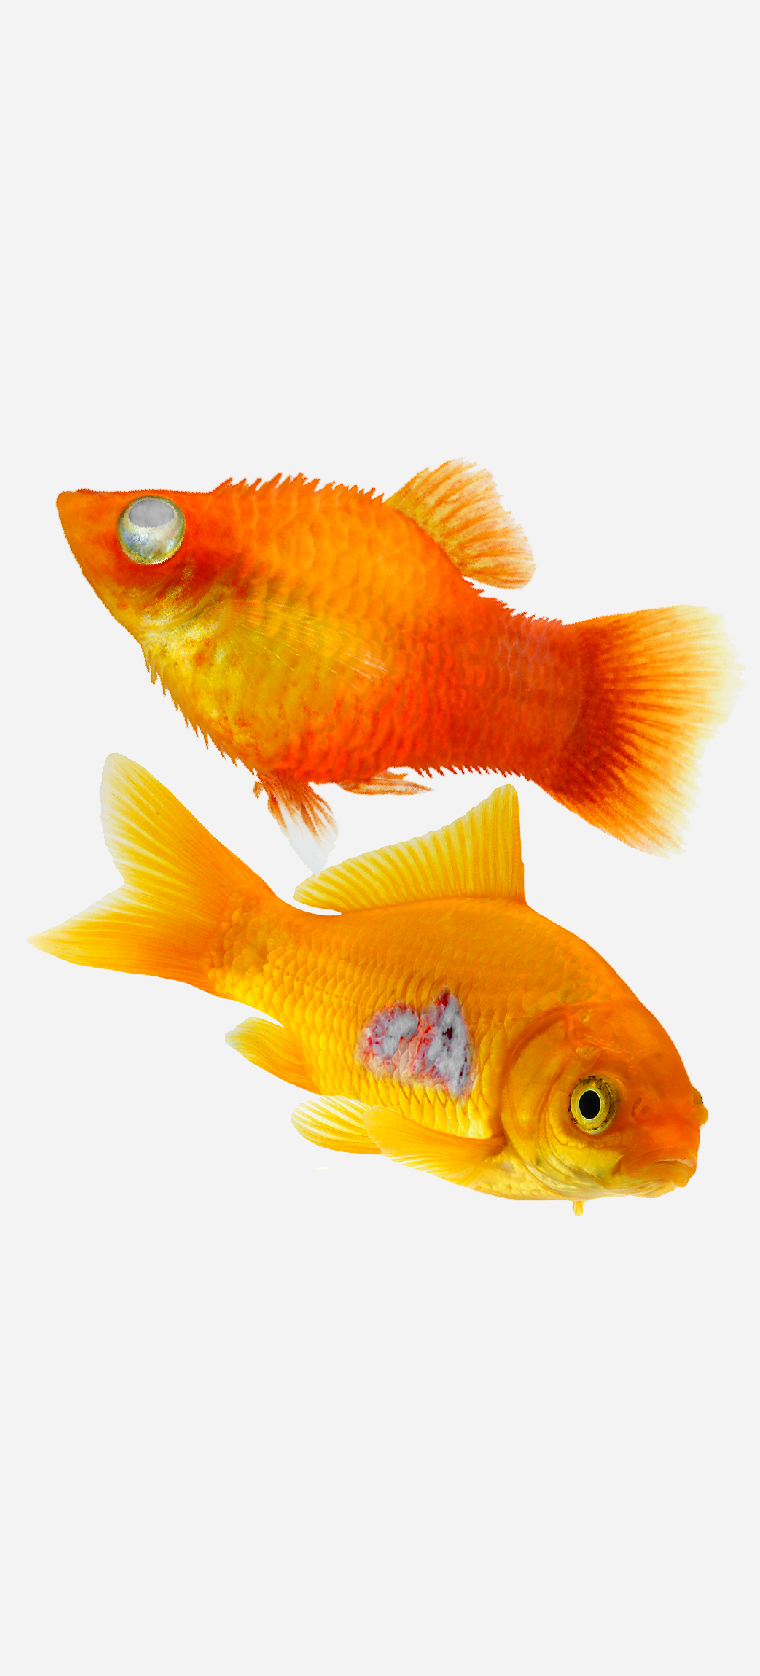 Two orange aquarium fish. One with a swollen grey eye and body swollen to resemble a porcupine. The other with an open sore ulcer